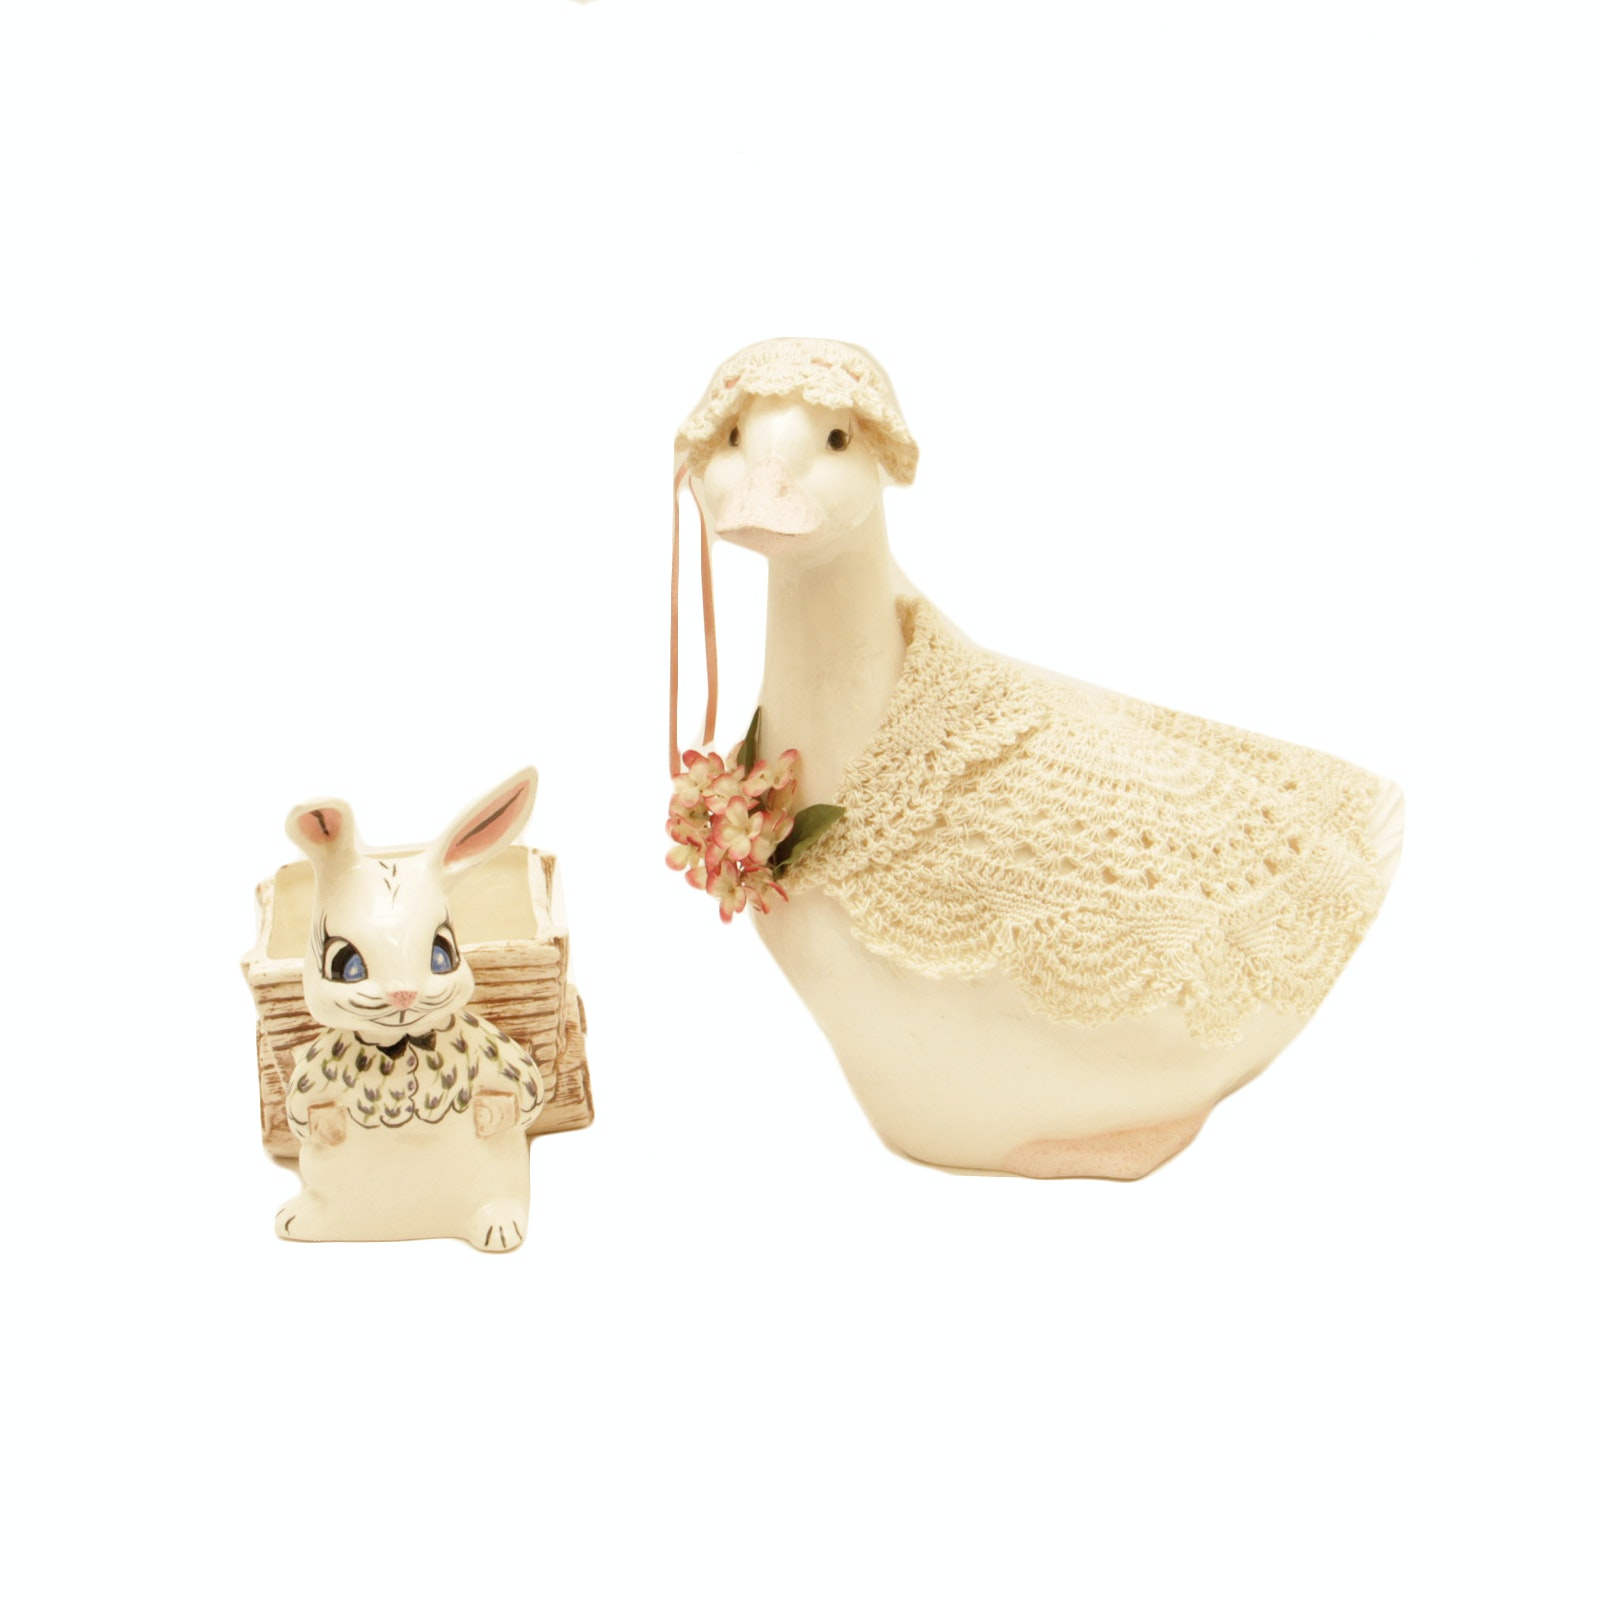 Ceramic Duck by Southwest Spirits and Bunny Basket